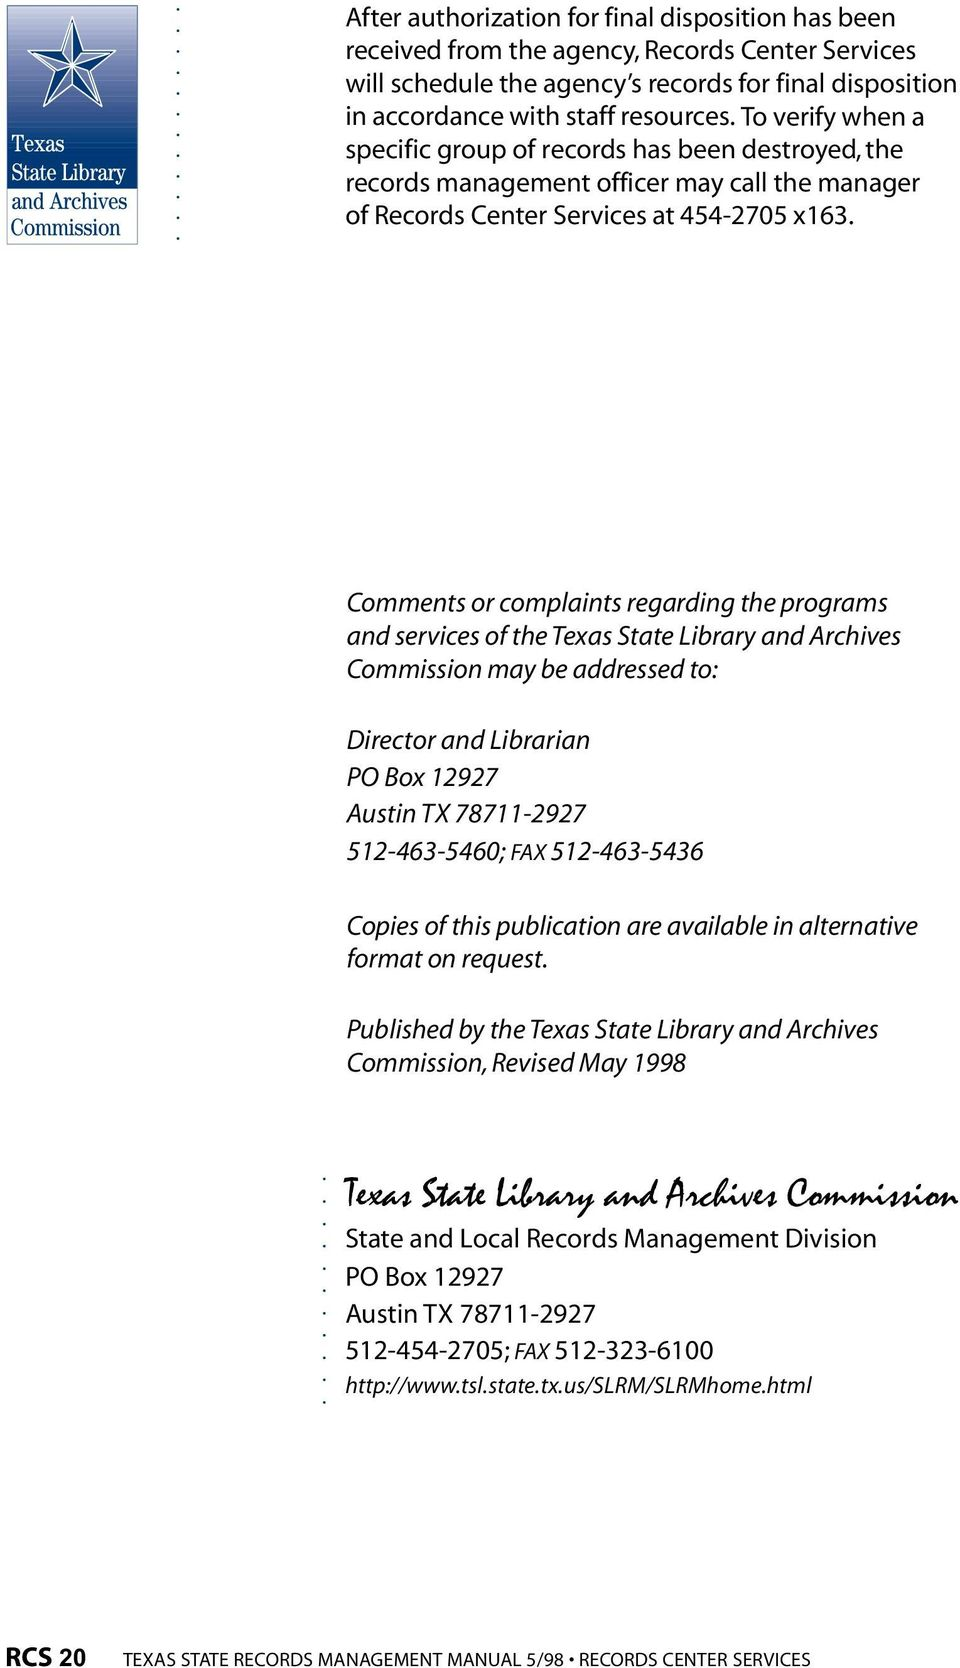 Comments or complaints regarding the programs and services of the Texas State Library and Archives Commission may be addressed to: Director and Librarian PO Box 12927 Austin TX 78711-2927